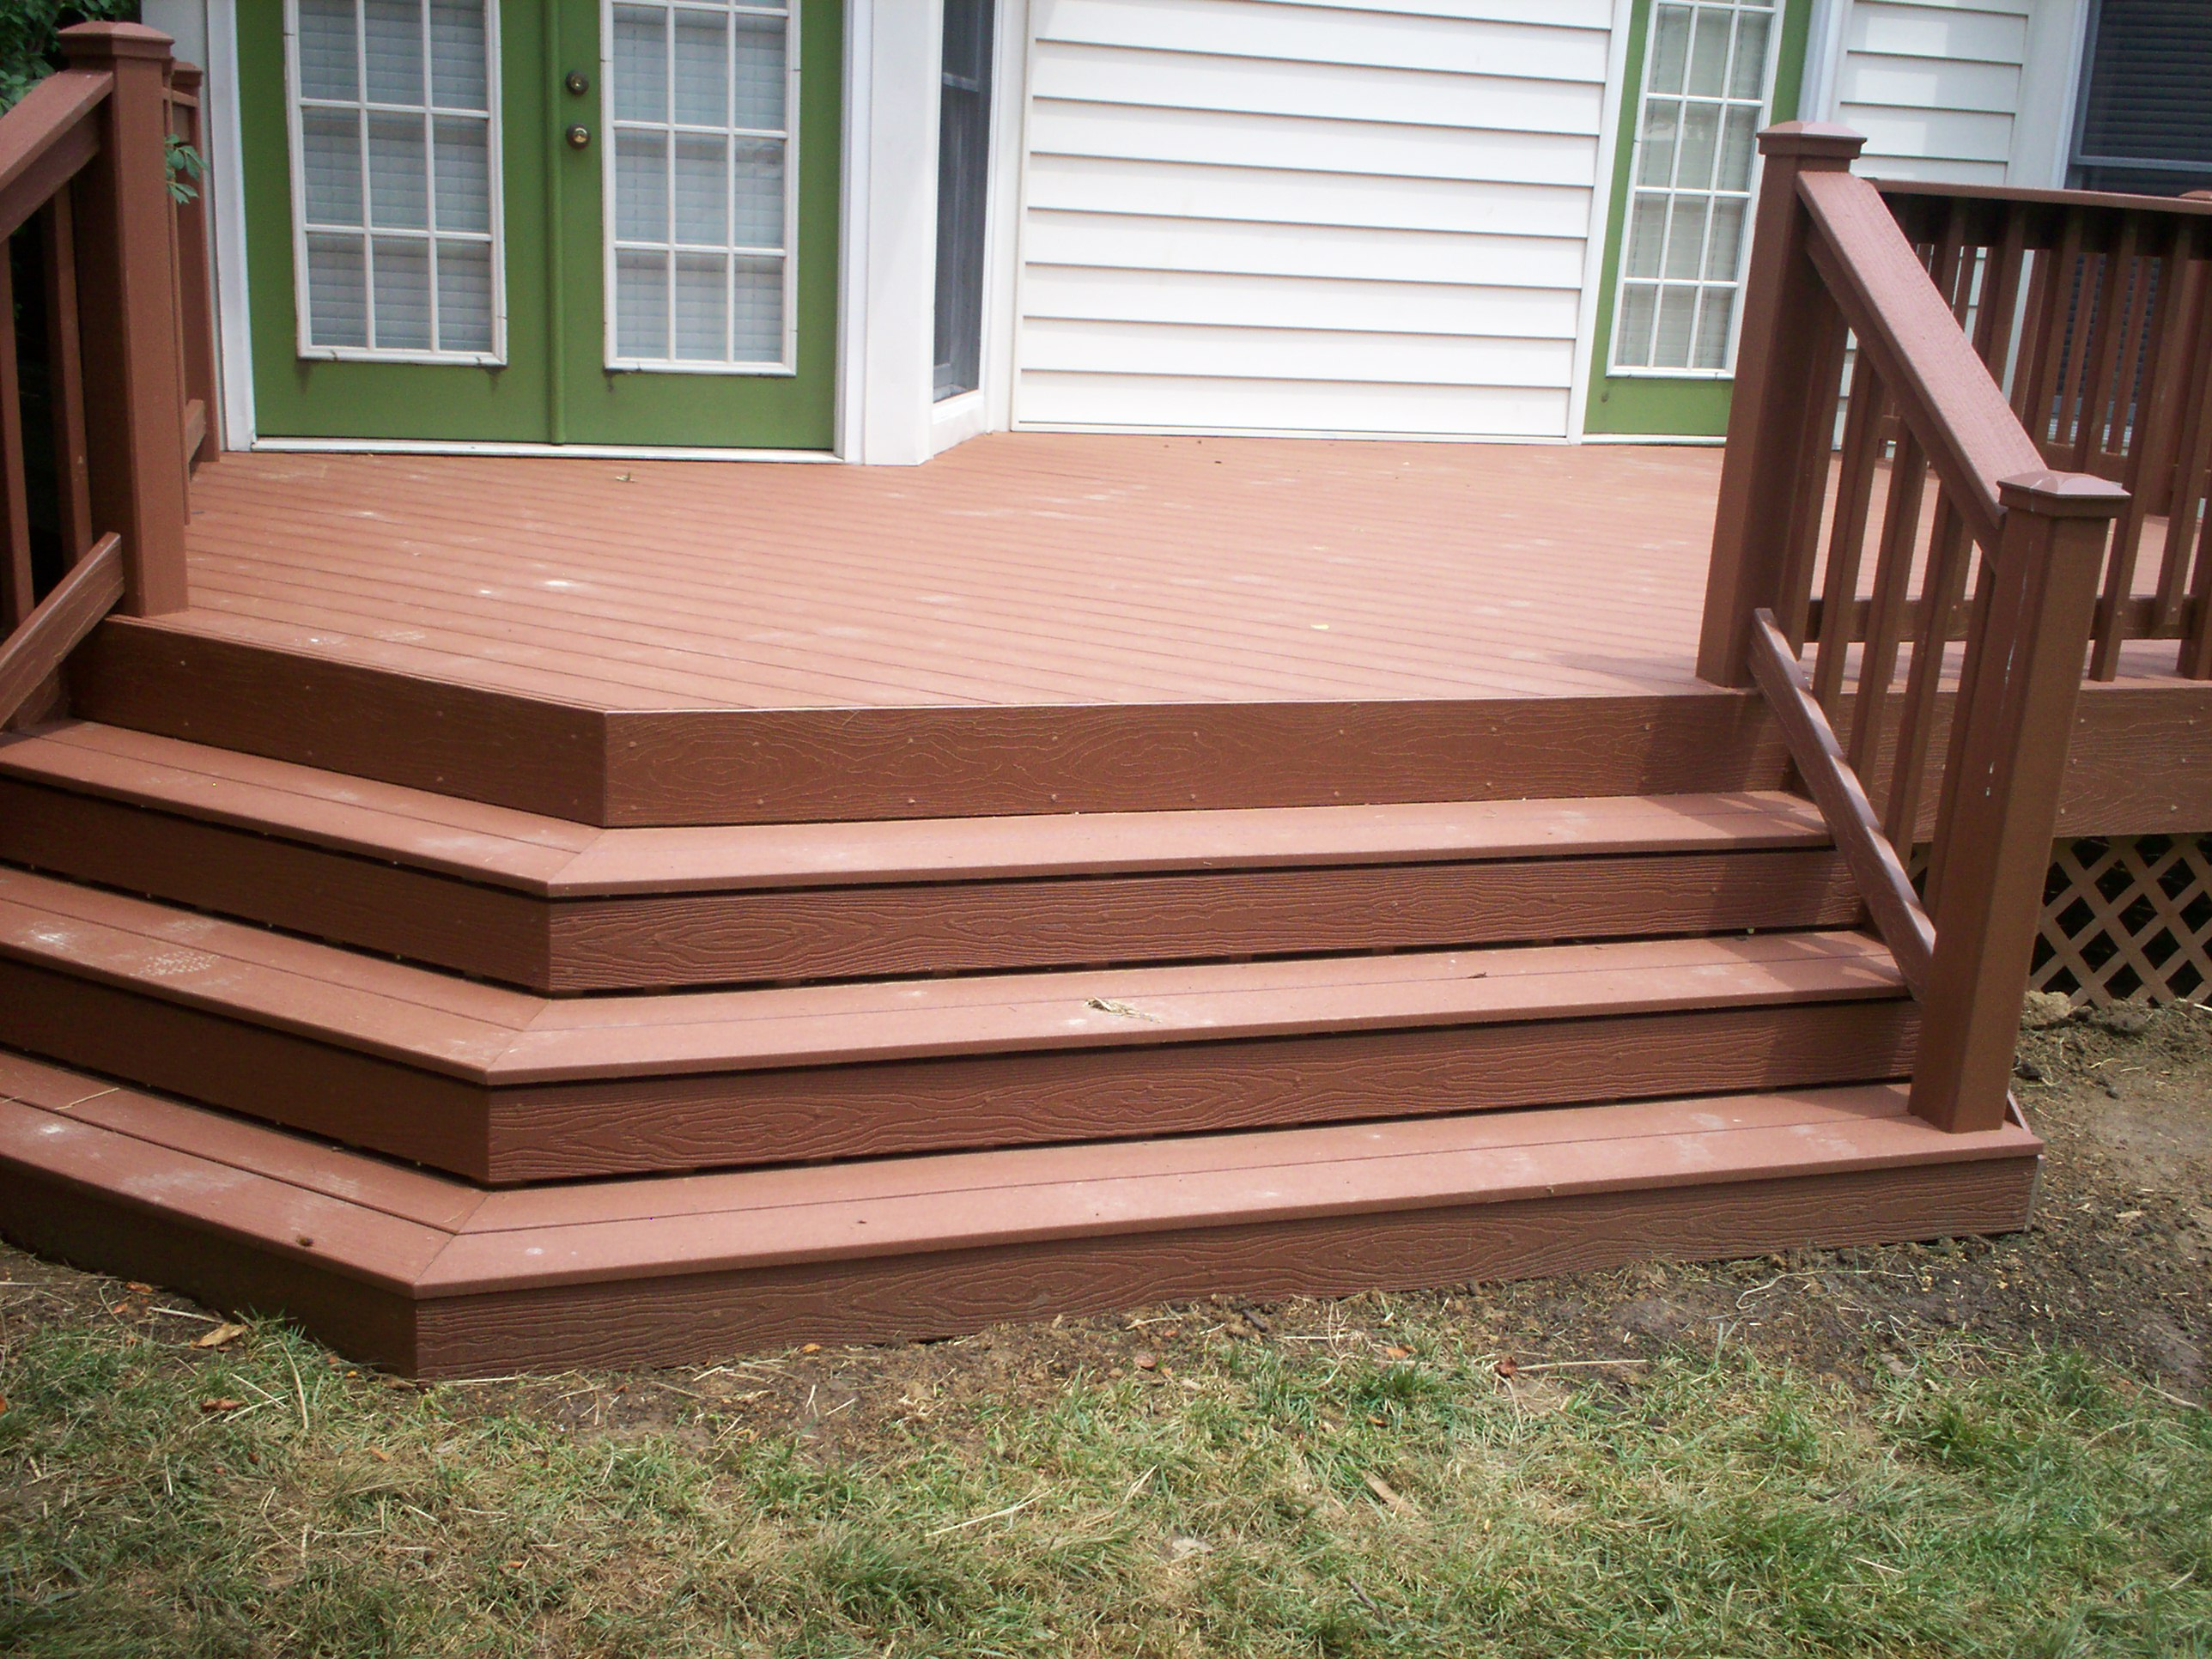 EverGrain Composite Deck With Flared Stairs In Chesterfield, Mo